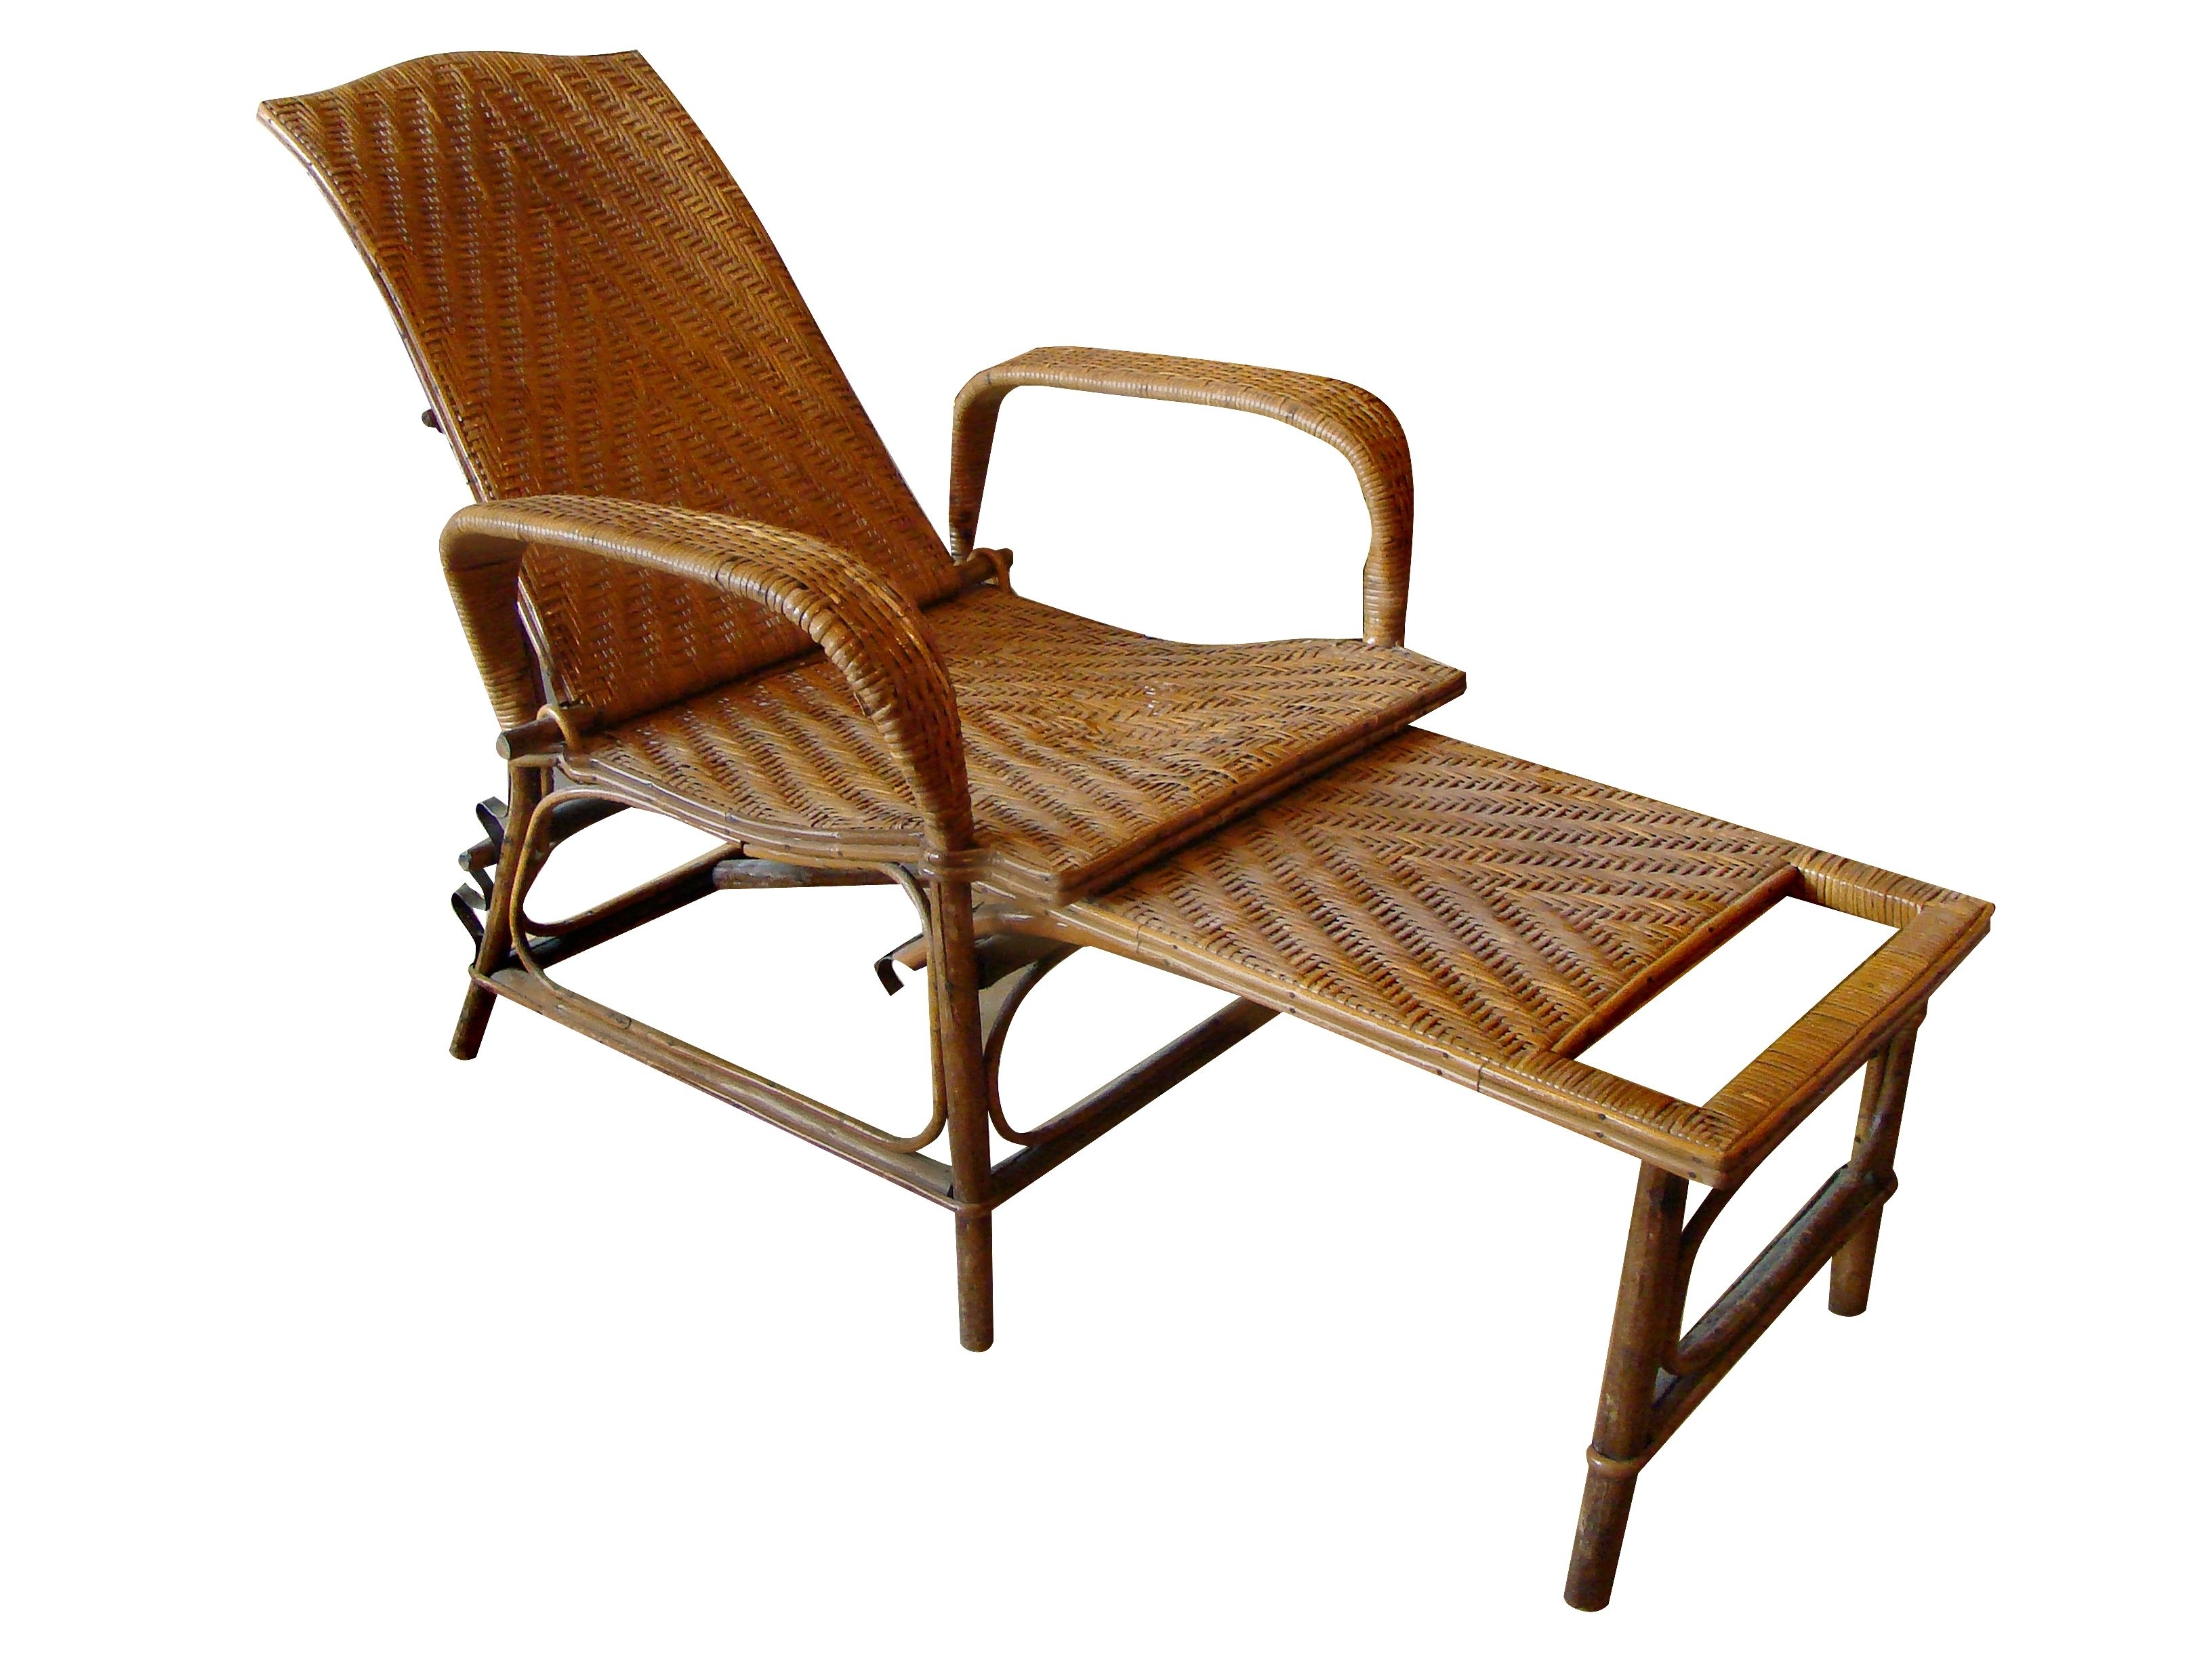 Preferred Chaise Lounge Chairs With Ottoman Pertaining To Vintage Rattan And Bamboo Chaise Lounge (View 12 of 15)